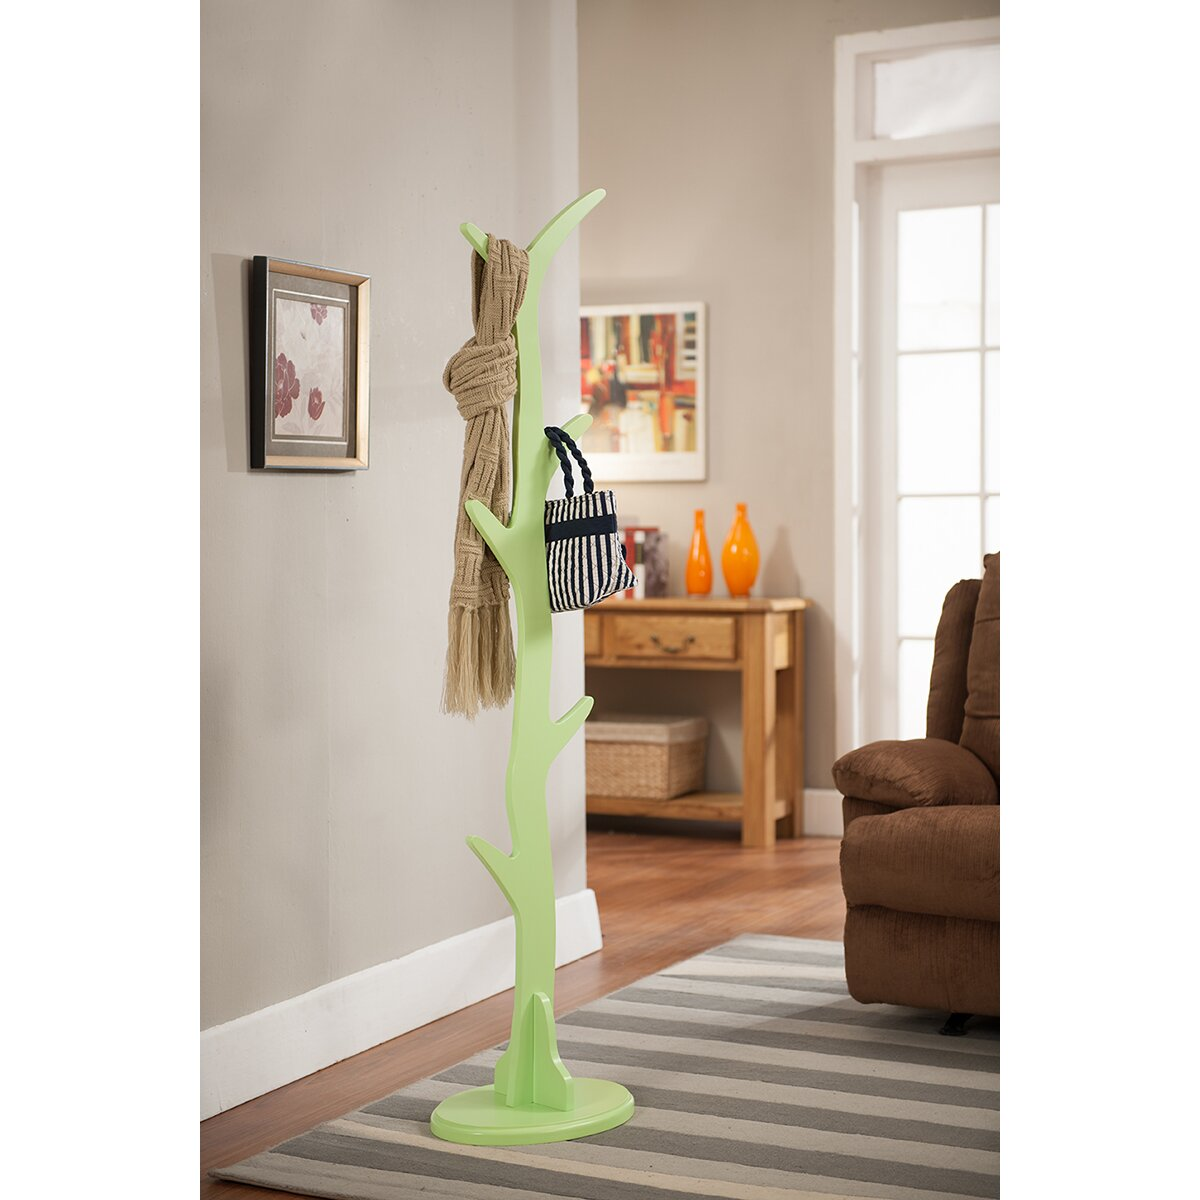 Inroom designs tree coat rack reviews wayfair In room designs